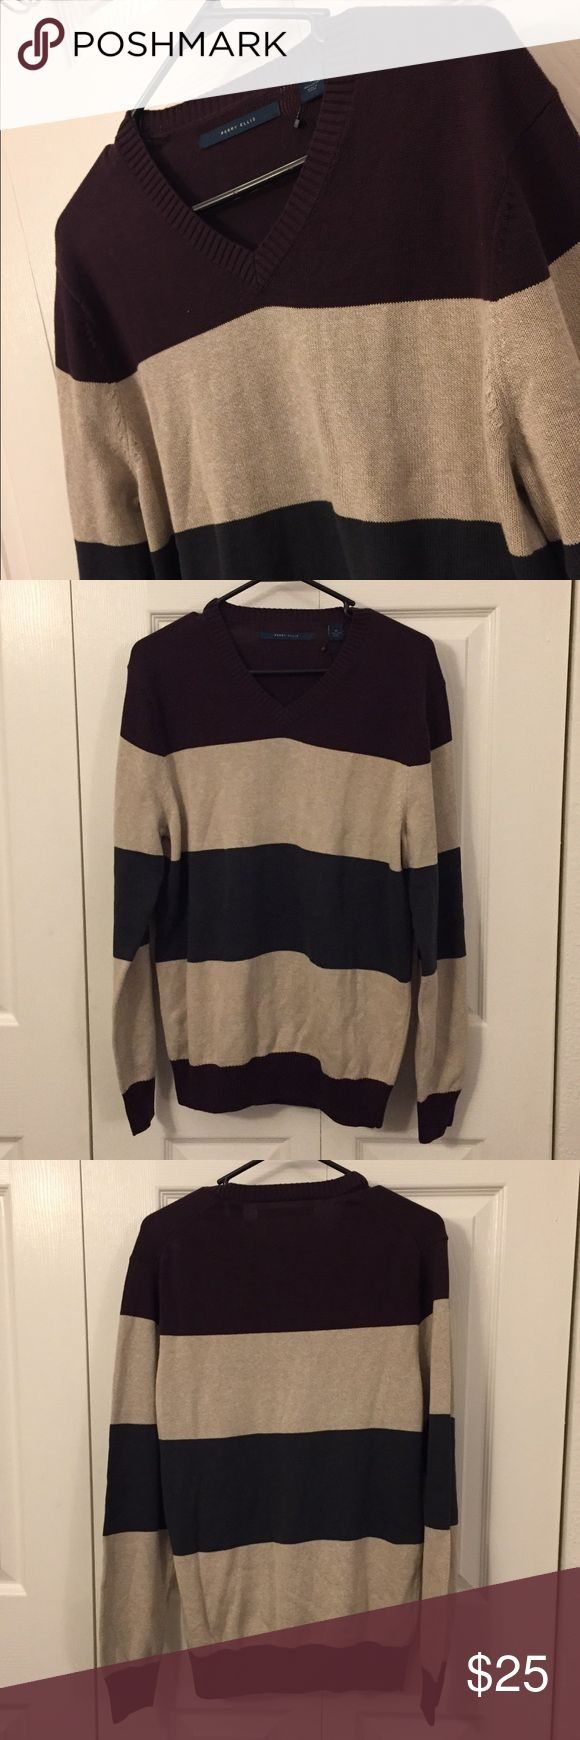 Perry Ellis Men's Crewneck Sweater Brand new with tags. V-neck striped sweater with beige, deep purple and charcoal colors.  ***Open to reasonable offers! Bundle and save on shipping! Perry Ellis Sweaters V-Neck